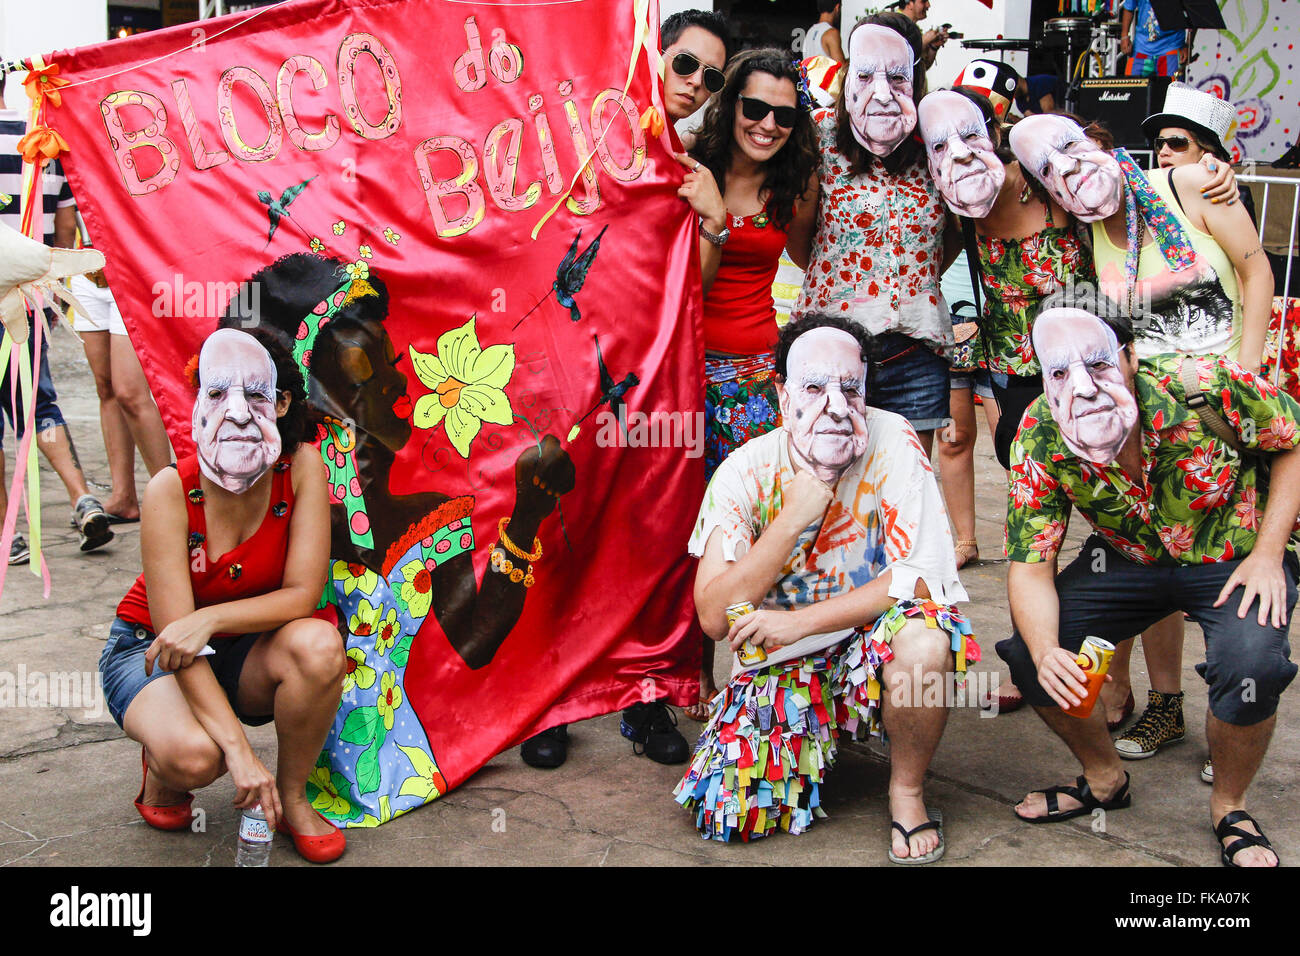 Revelers pack Kiss with masks in the carnival of marches - historic center - Stock Image